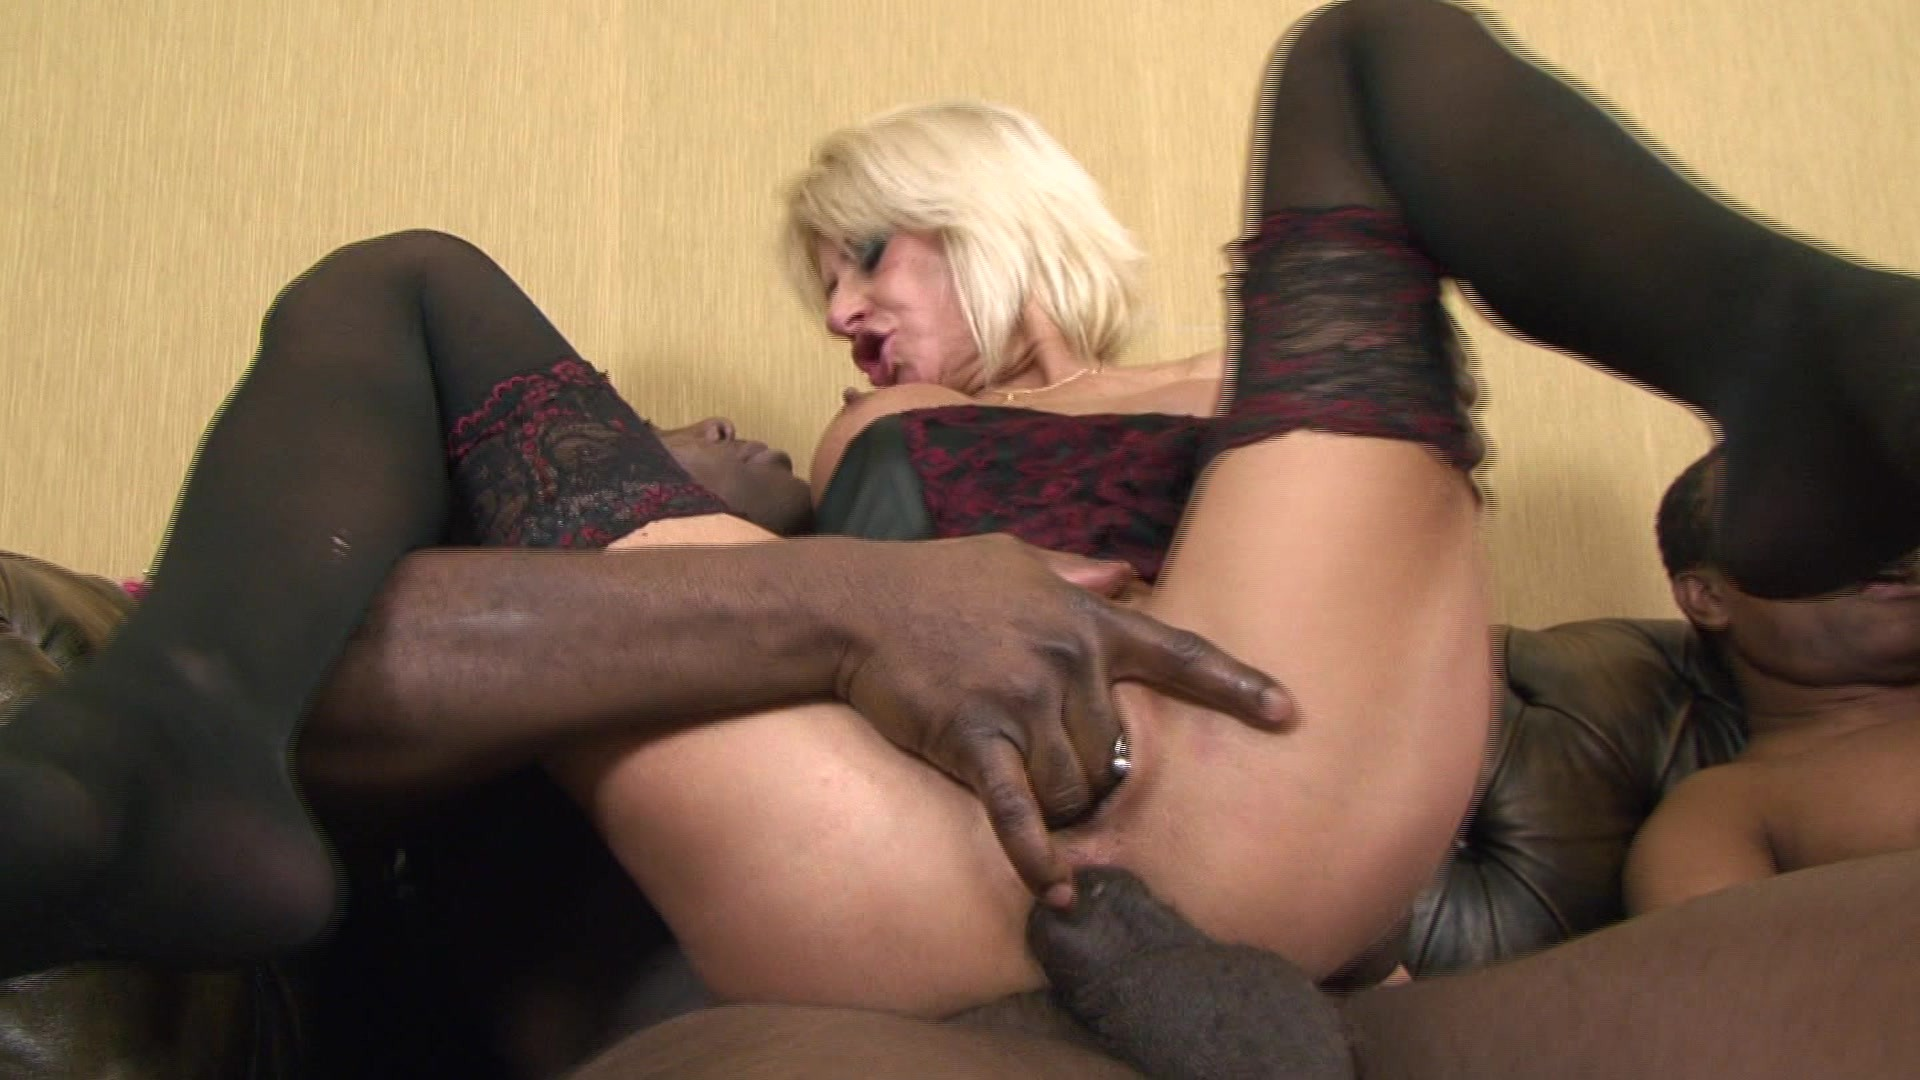 Two Blonde MILFs Fuck Each Otherss Wet Pussies with Glass Dildo Then Fuck  Big Black Cocks